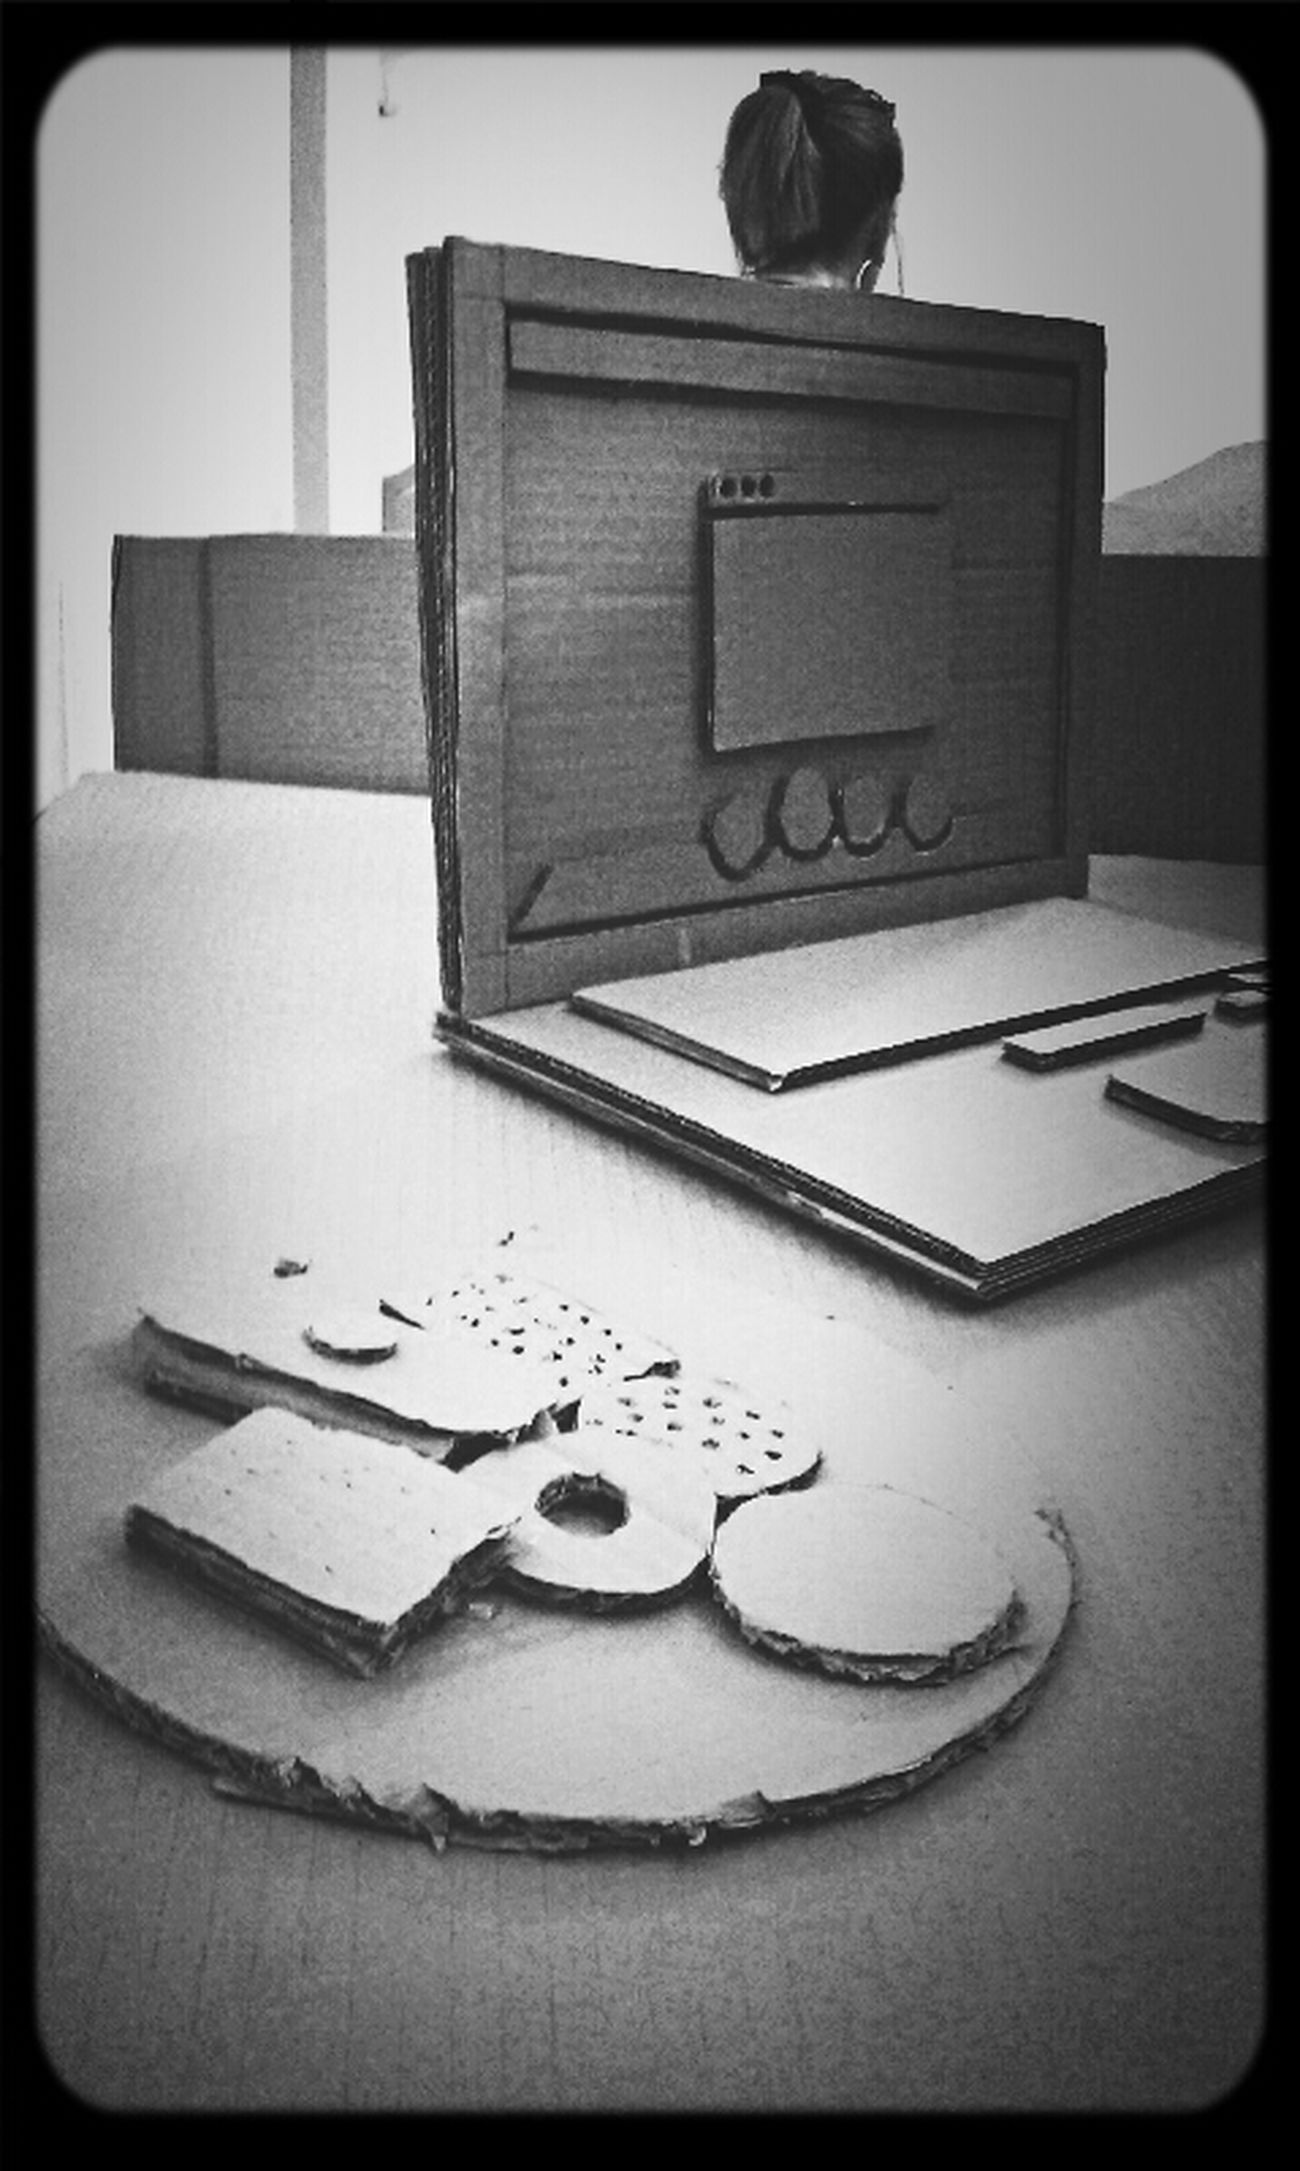 Cardboard Art Cockies Imac